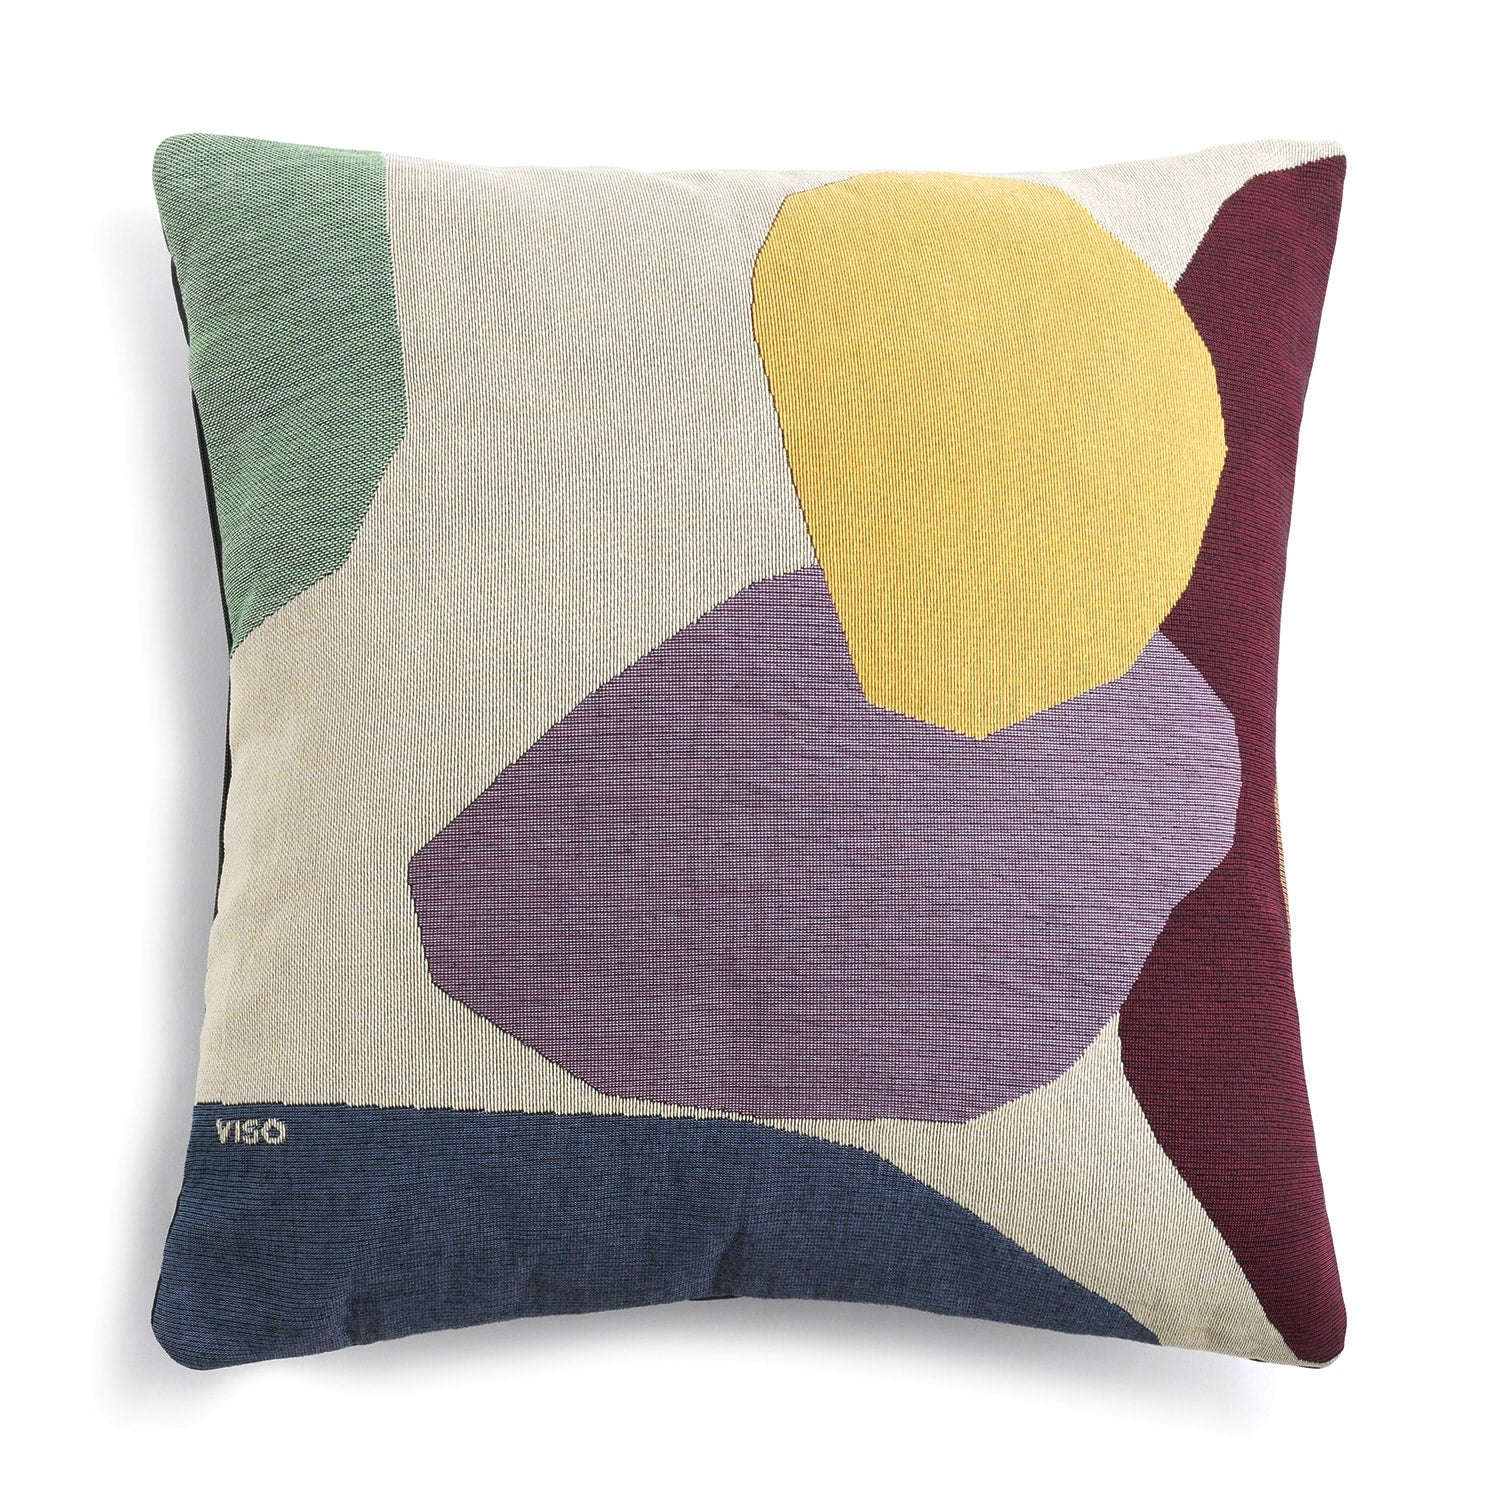 Assorted Tapestry Pillows by VISO Project